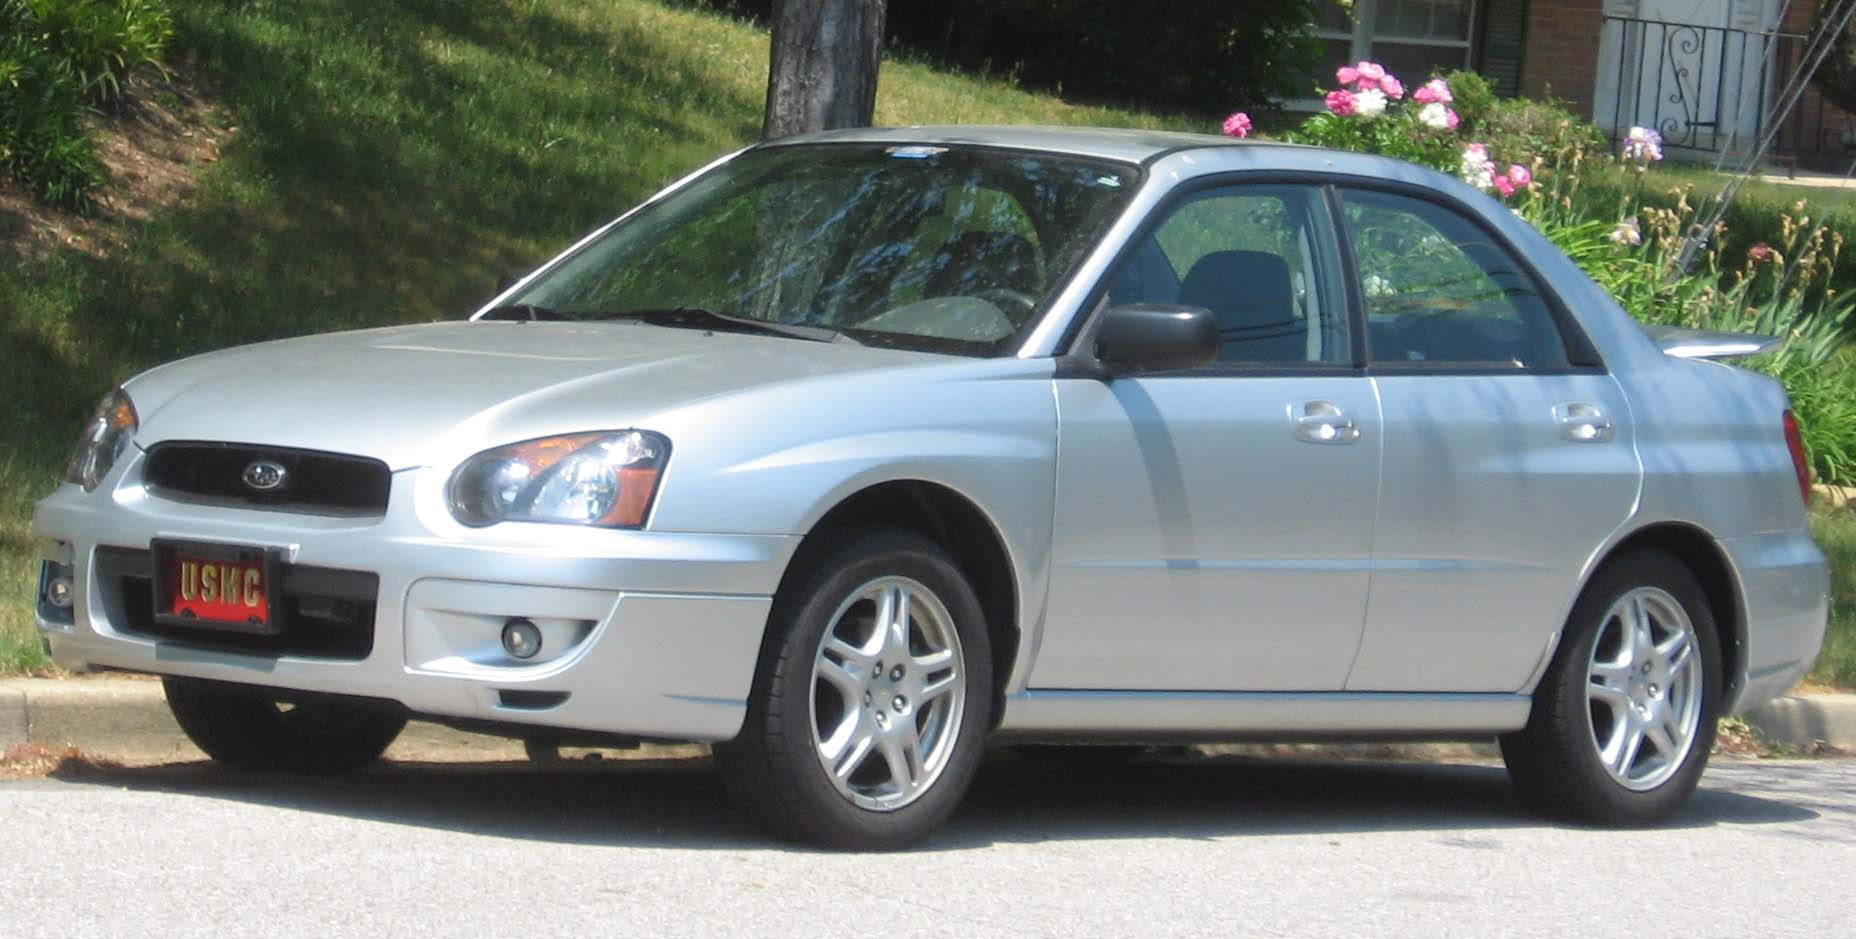 2003 Subaru Impreza 2.5 RS - Sedan AWD Manual